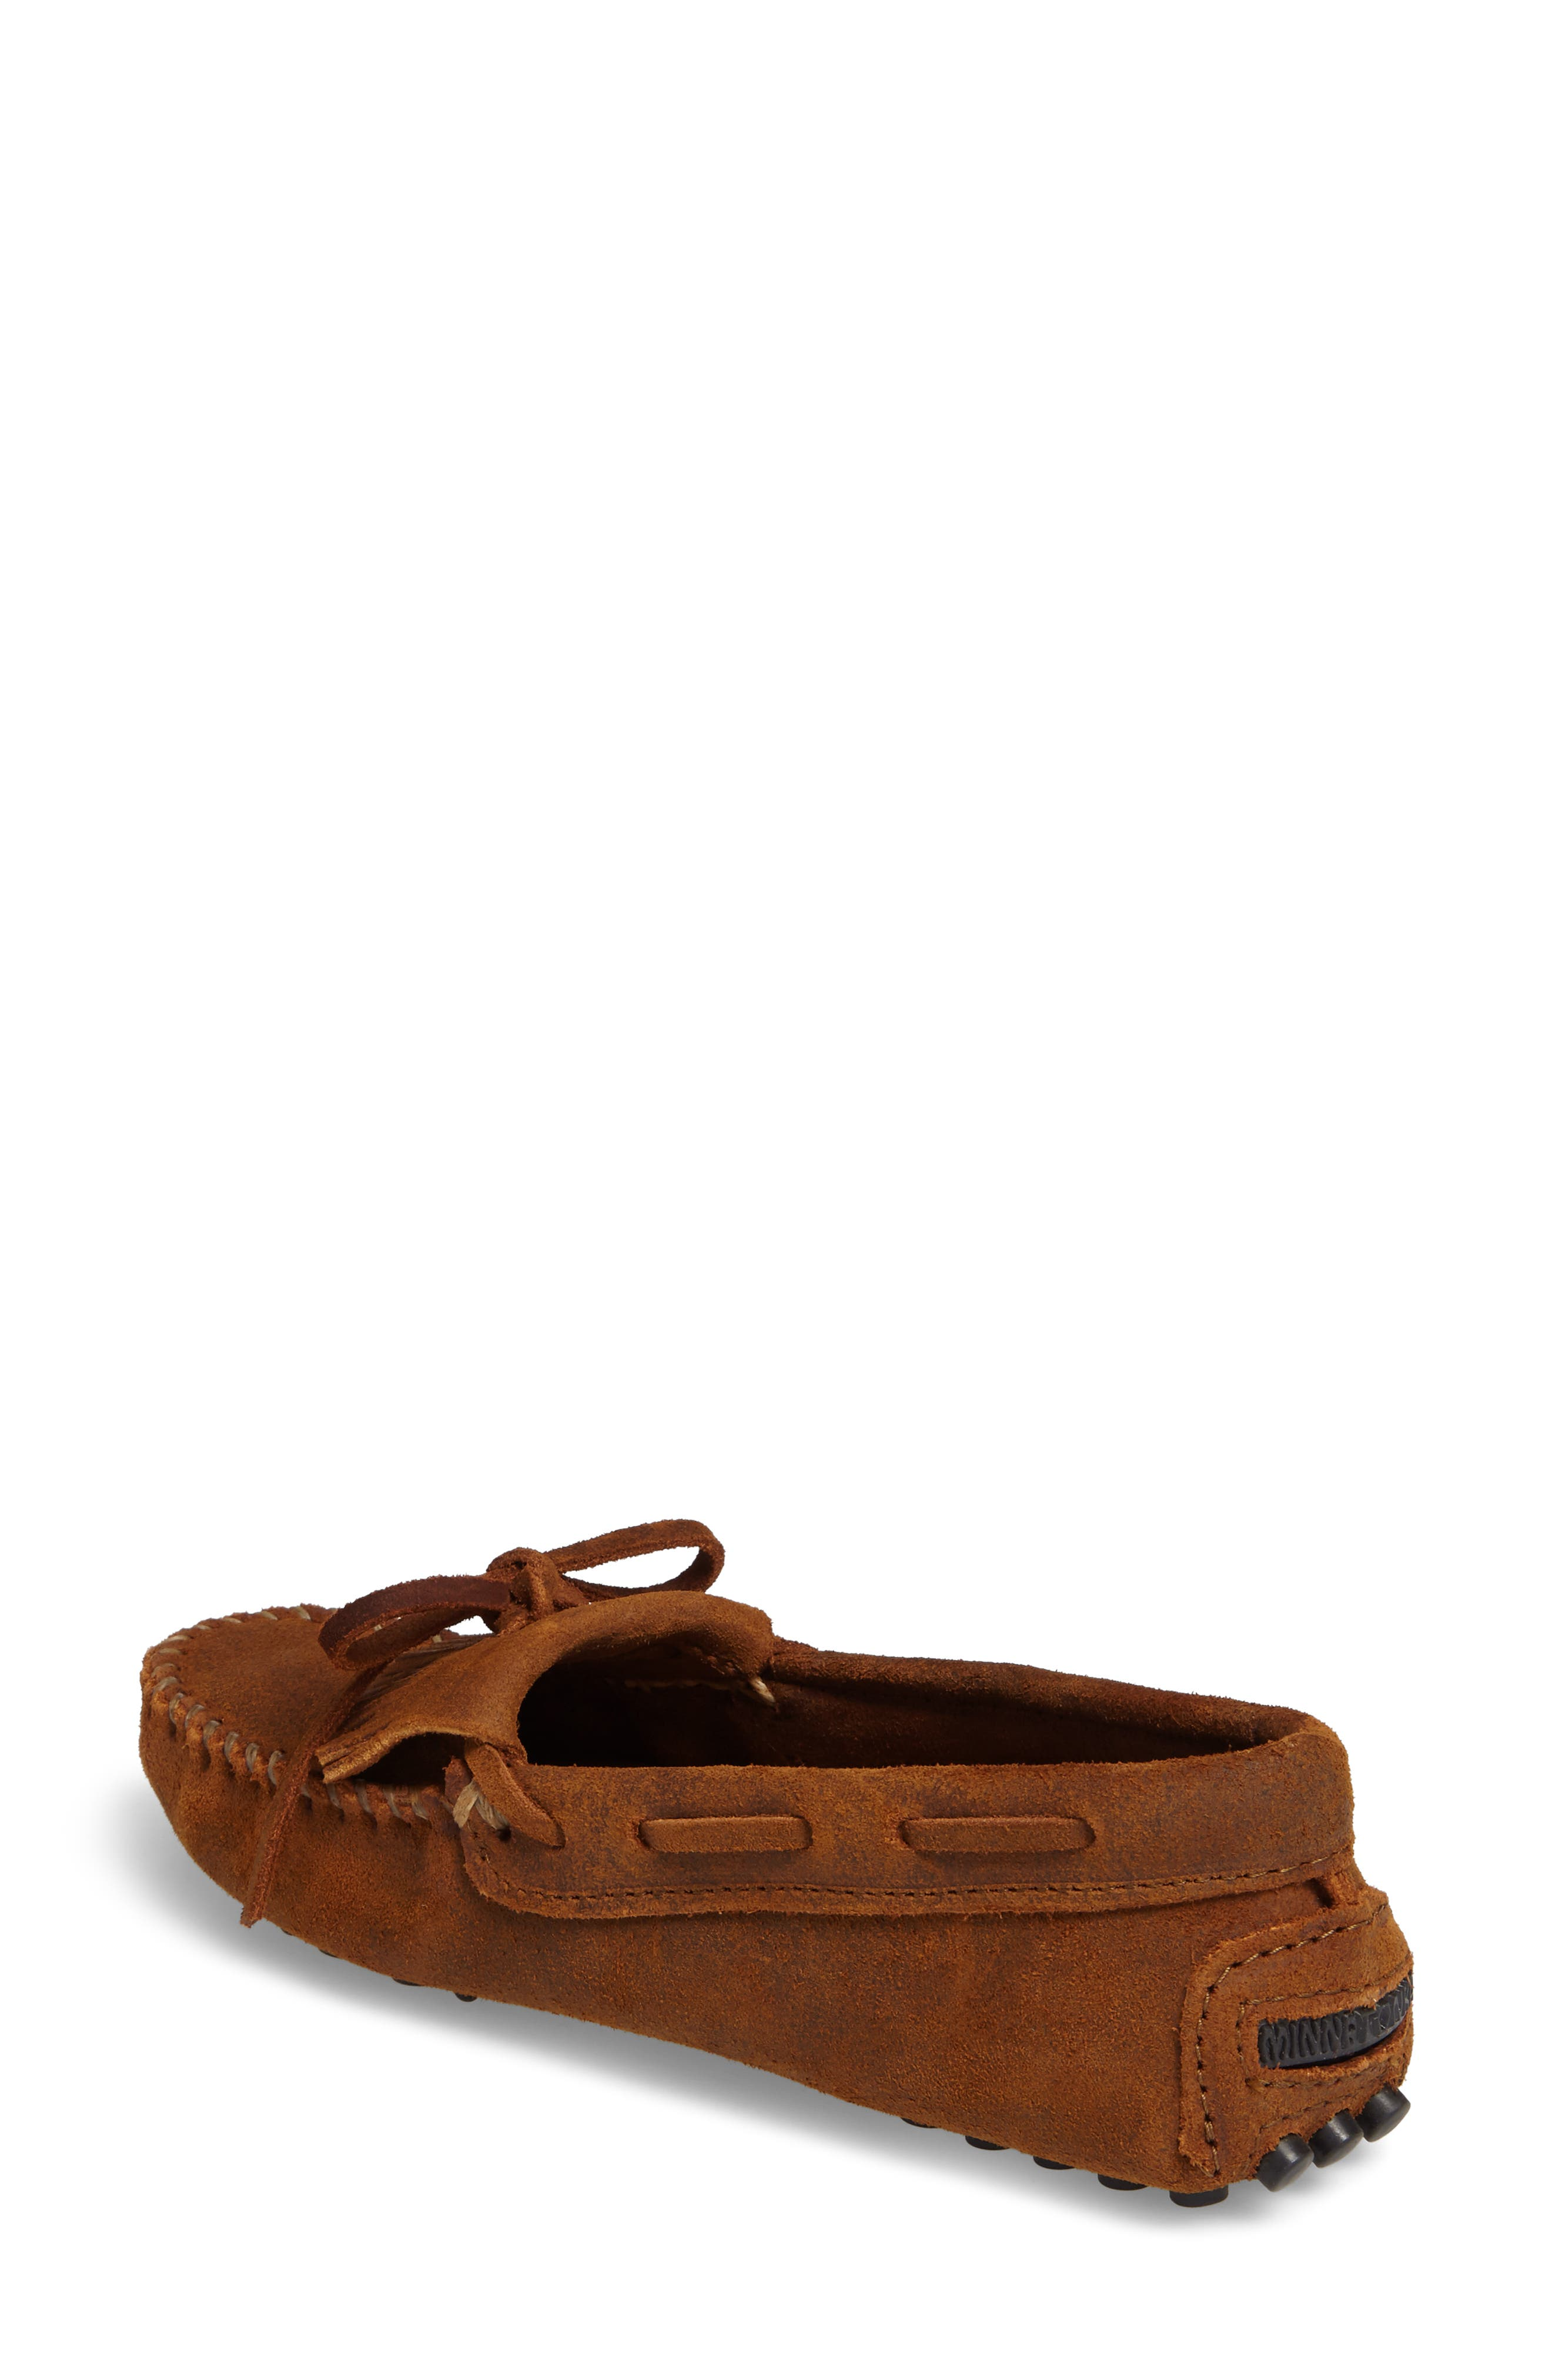 MINNETONKA, Kilty Driving Moccasin, Alternate thumbnail 2, color, BROWN RUFF